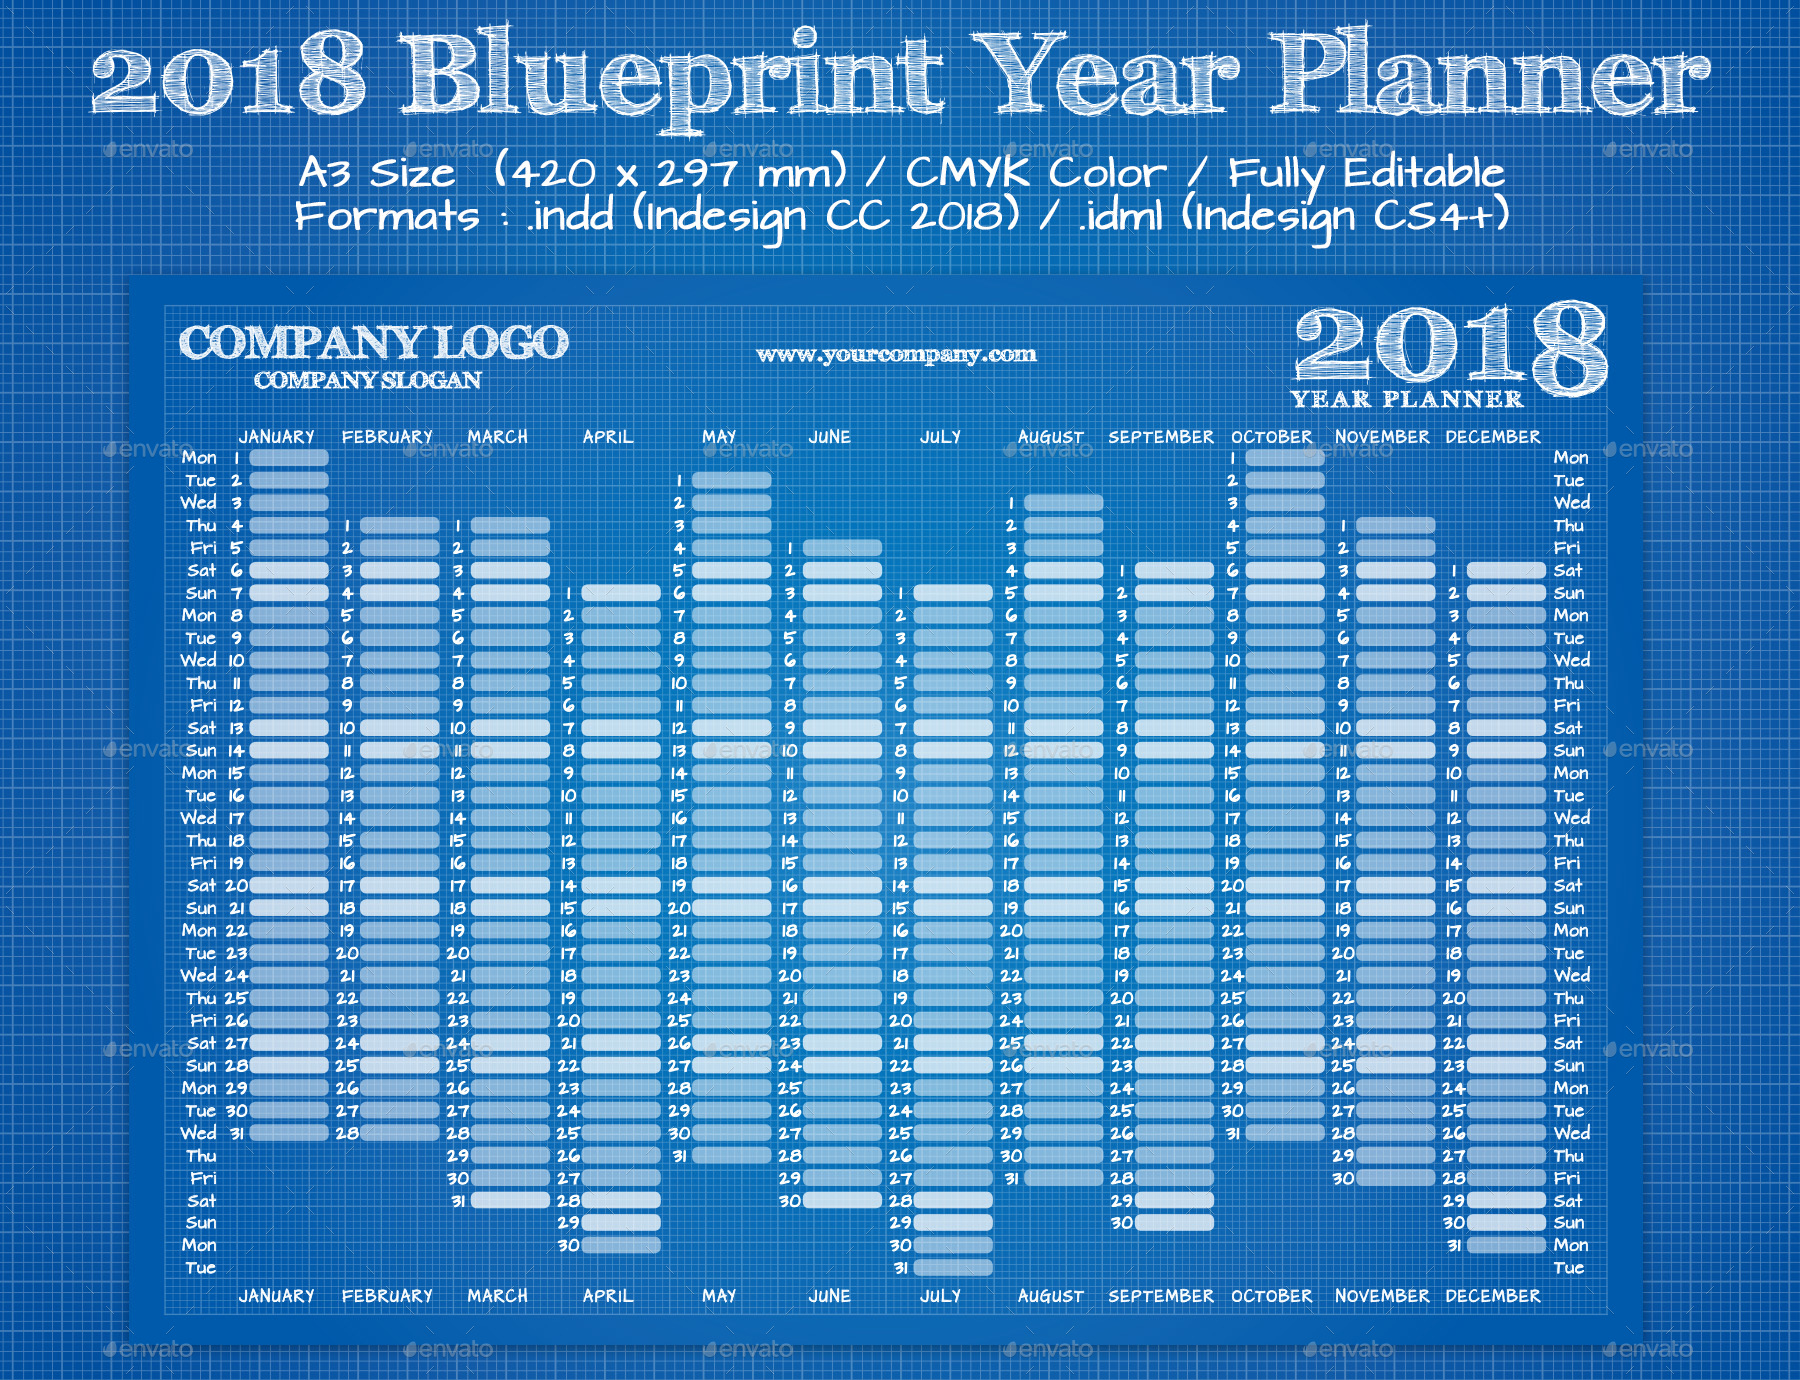 2018 blueprint year wall planner calendar by best gfx graphicriver 2018 blue print year wall calendarg malvernweather Image collections